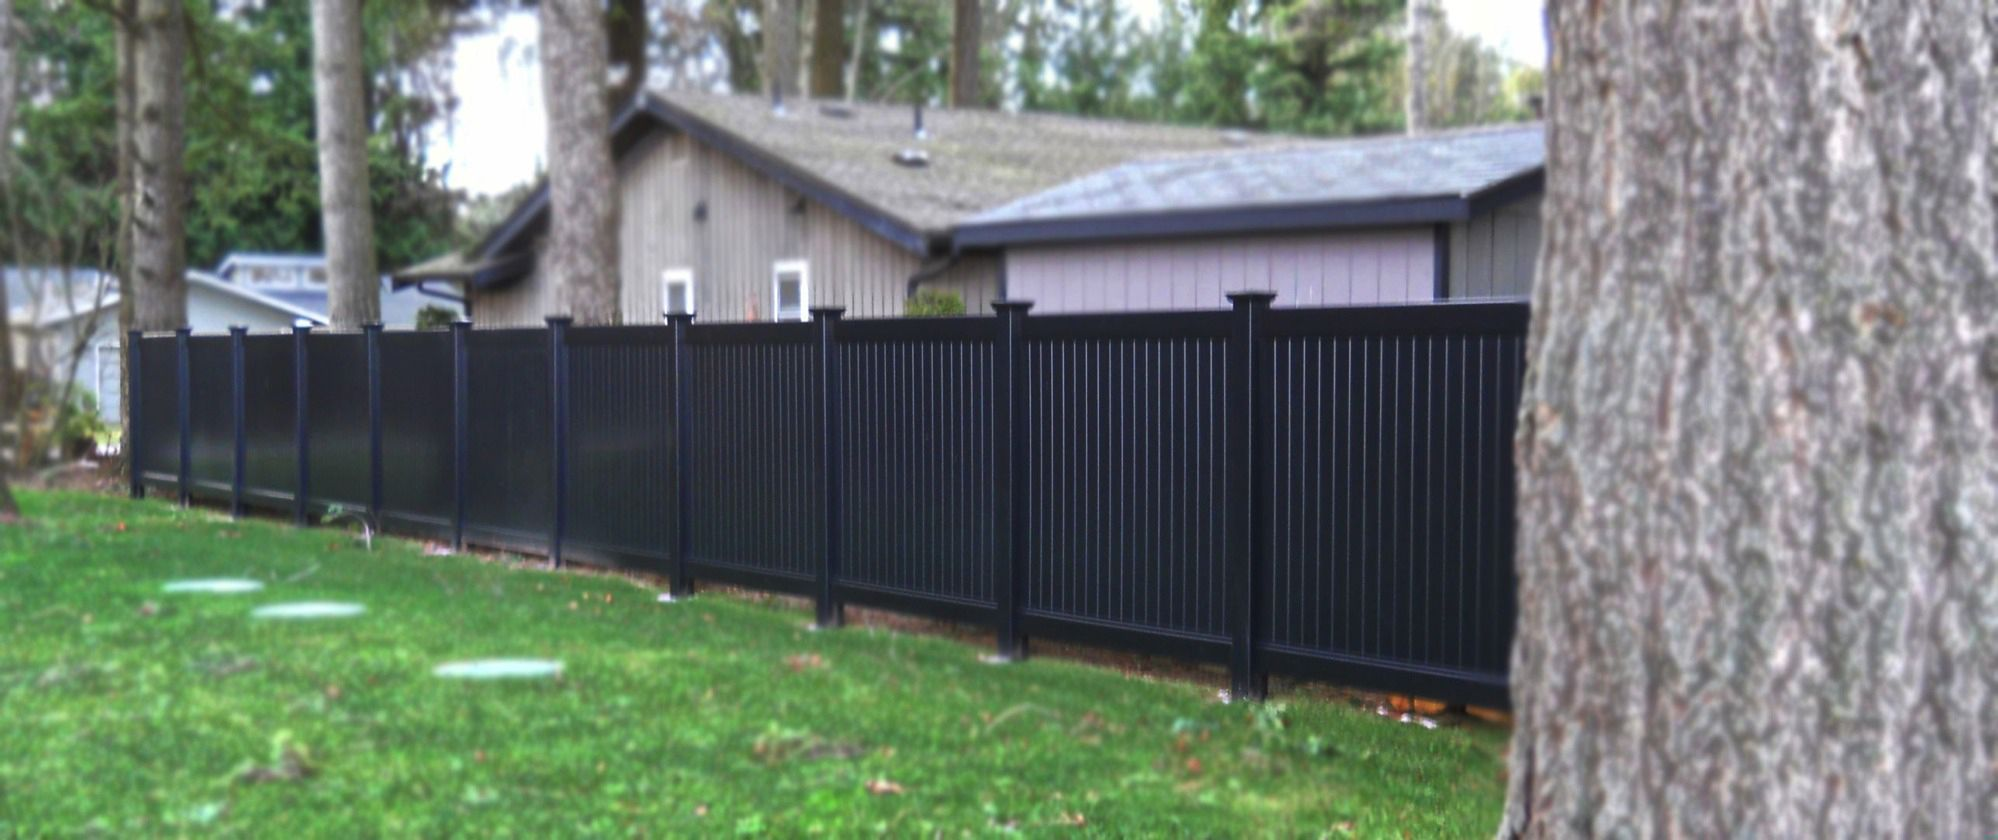 New Wood Plastic Composite Fencing Wall Uk Vinyl Fence Vinyl Privacy Fence Vinyl Fence Panels